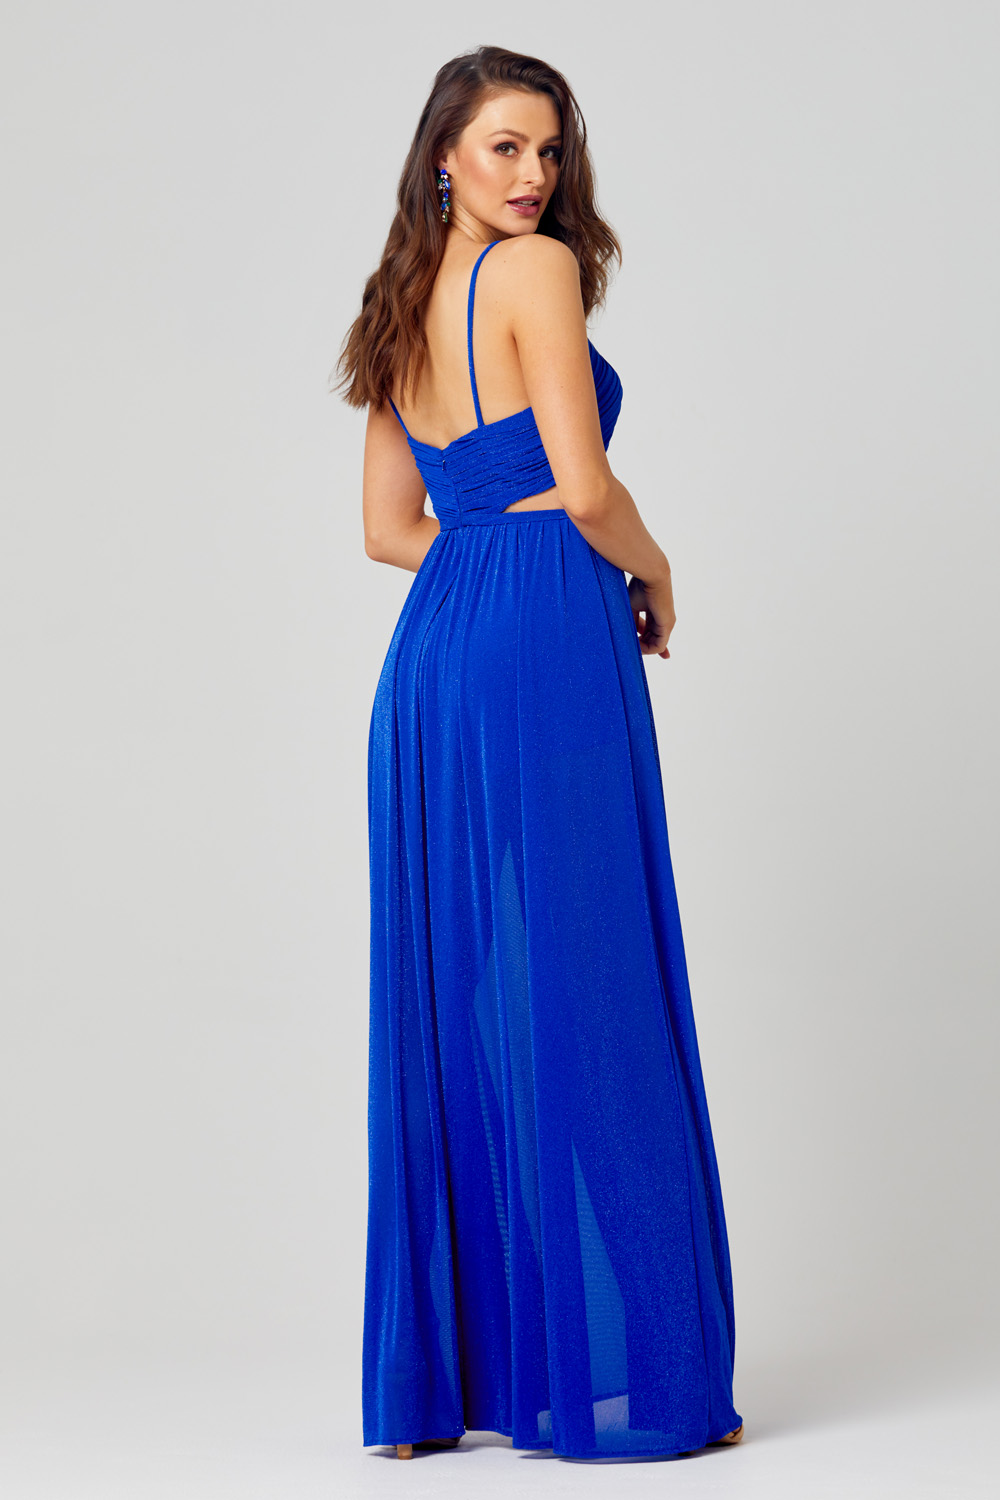 Lulu High Leg Formal Dress - PO845 back